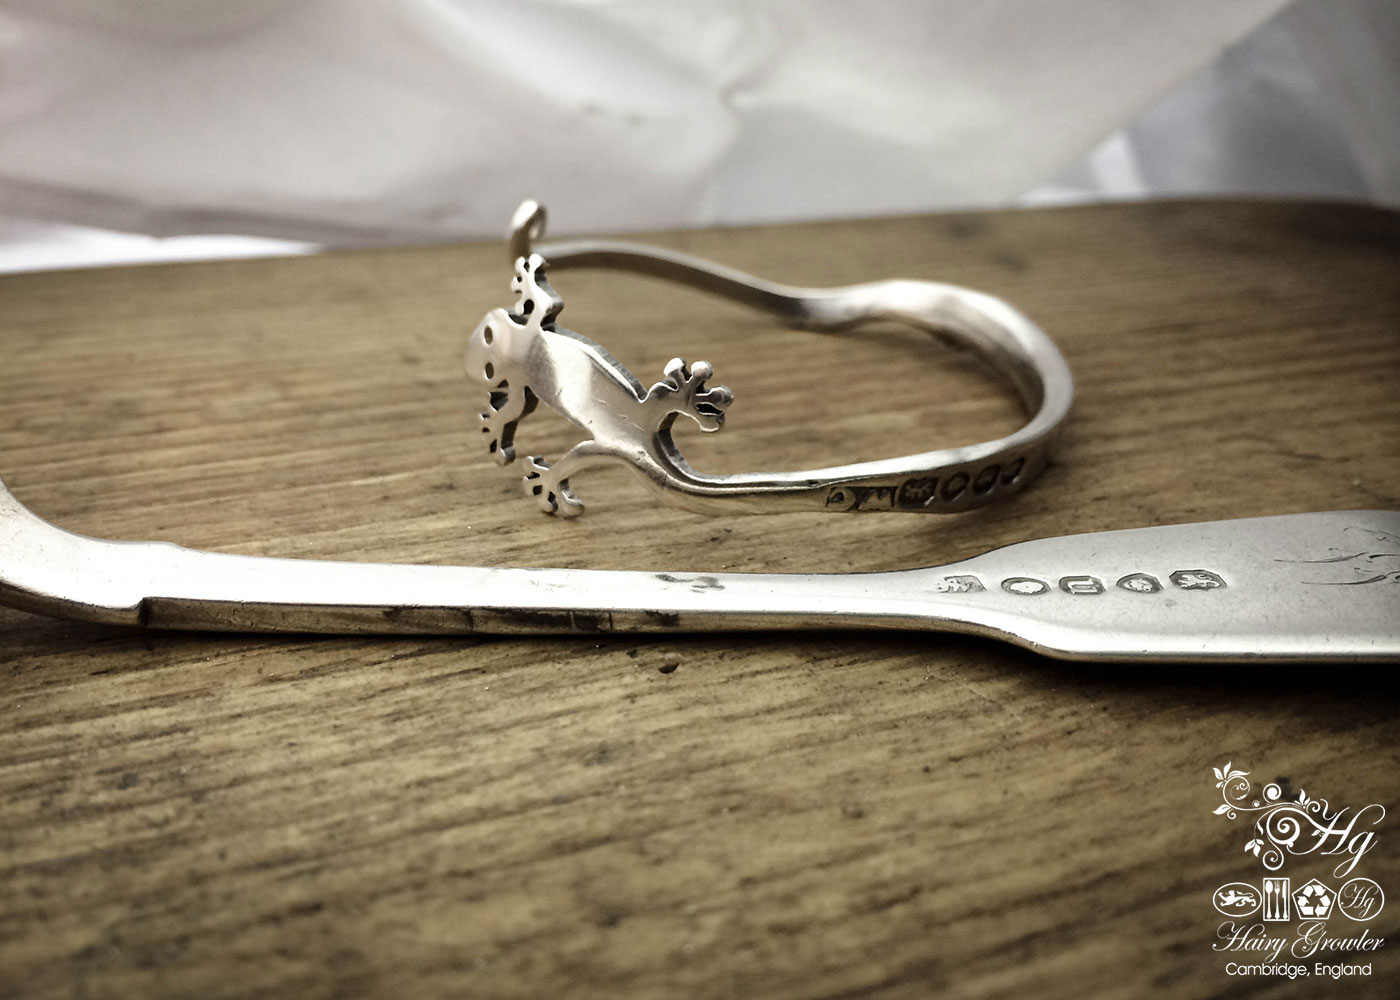 handcrafted, recycled and repurposed fork gecko bracelet bangle